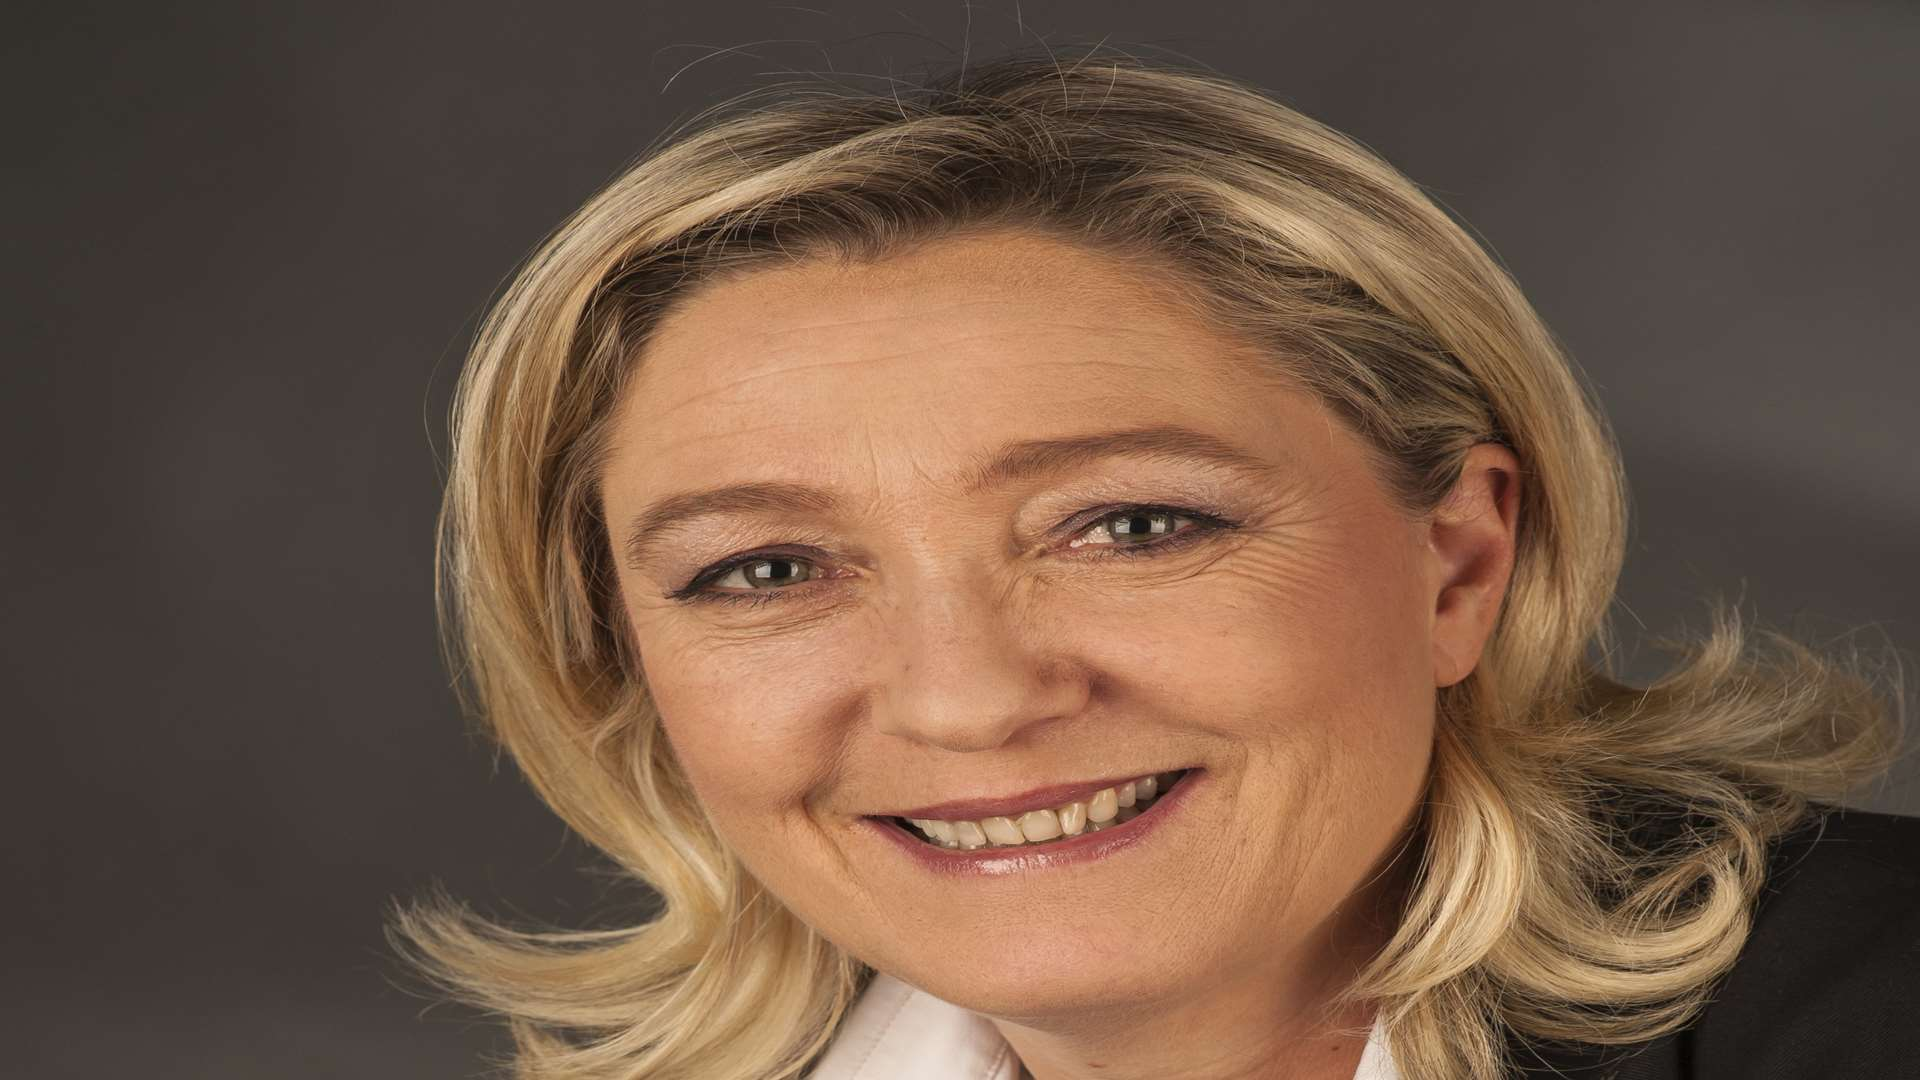 Marine Le Pen of France's right-wing Front National.